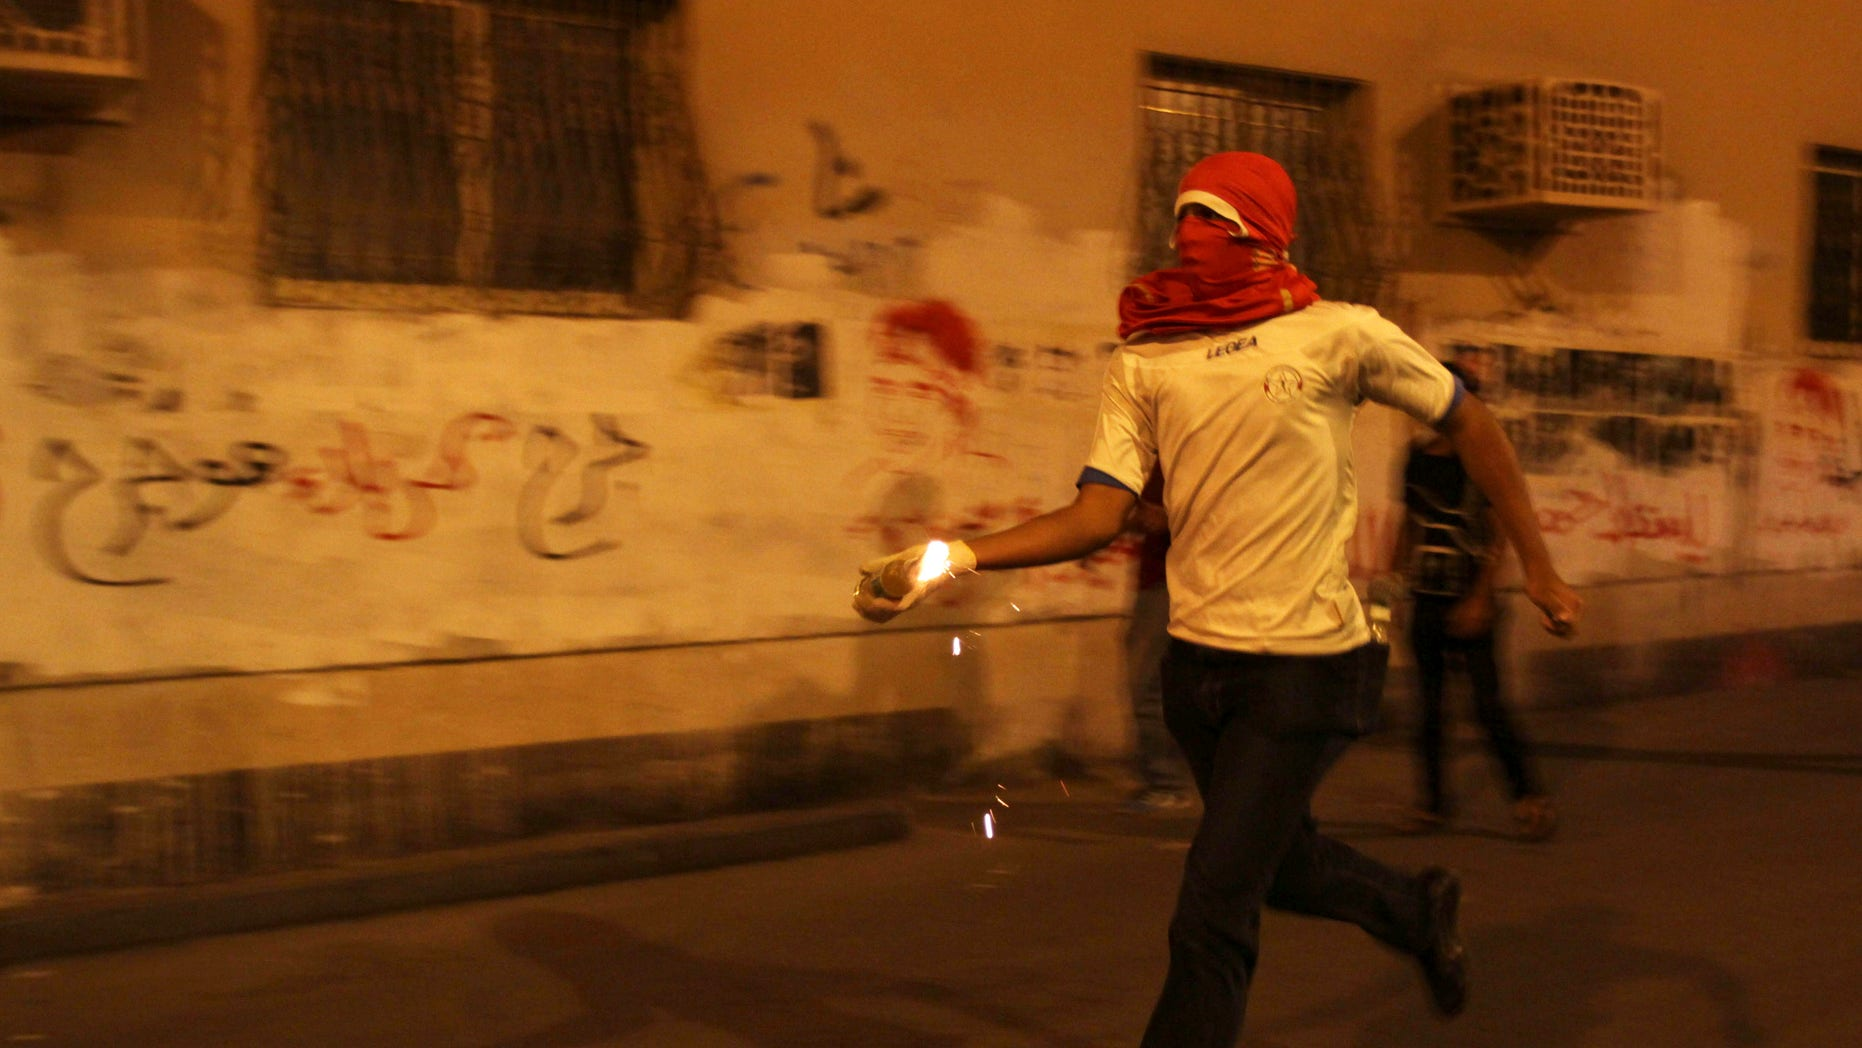 A Bahraini anti-government protester prepares to throw a petrol bomb at riot police during clashes following a rally protesting against the upcoming Formula One race in Sanabis, Bahrain, Tuesday, April 9, 2013. The Bahrain Grand Prix is to be held April 21. Bahrain says four suspects have been arrested after homemade firebombs were hurled at the foreign ministry in a possible escalation of anti-government protests. (AP Photo/Hasan Jamali)